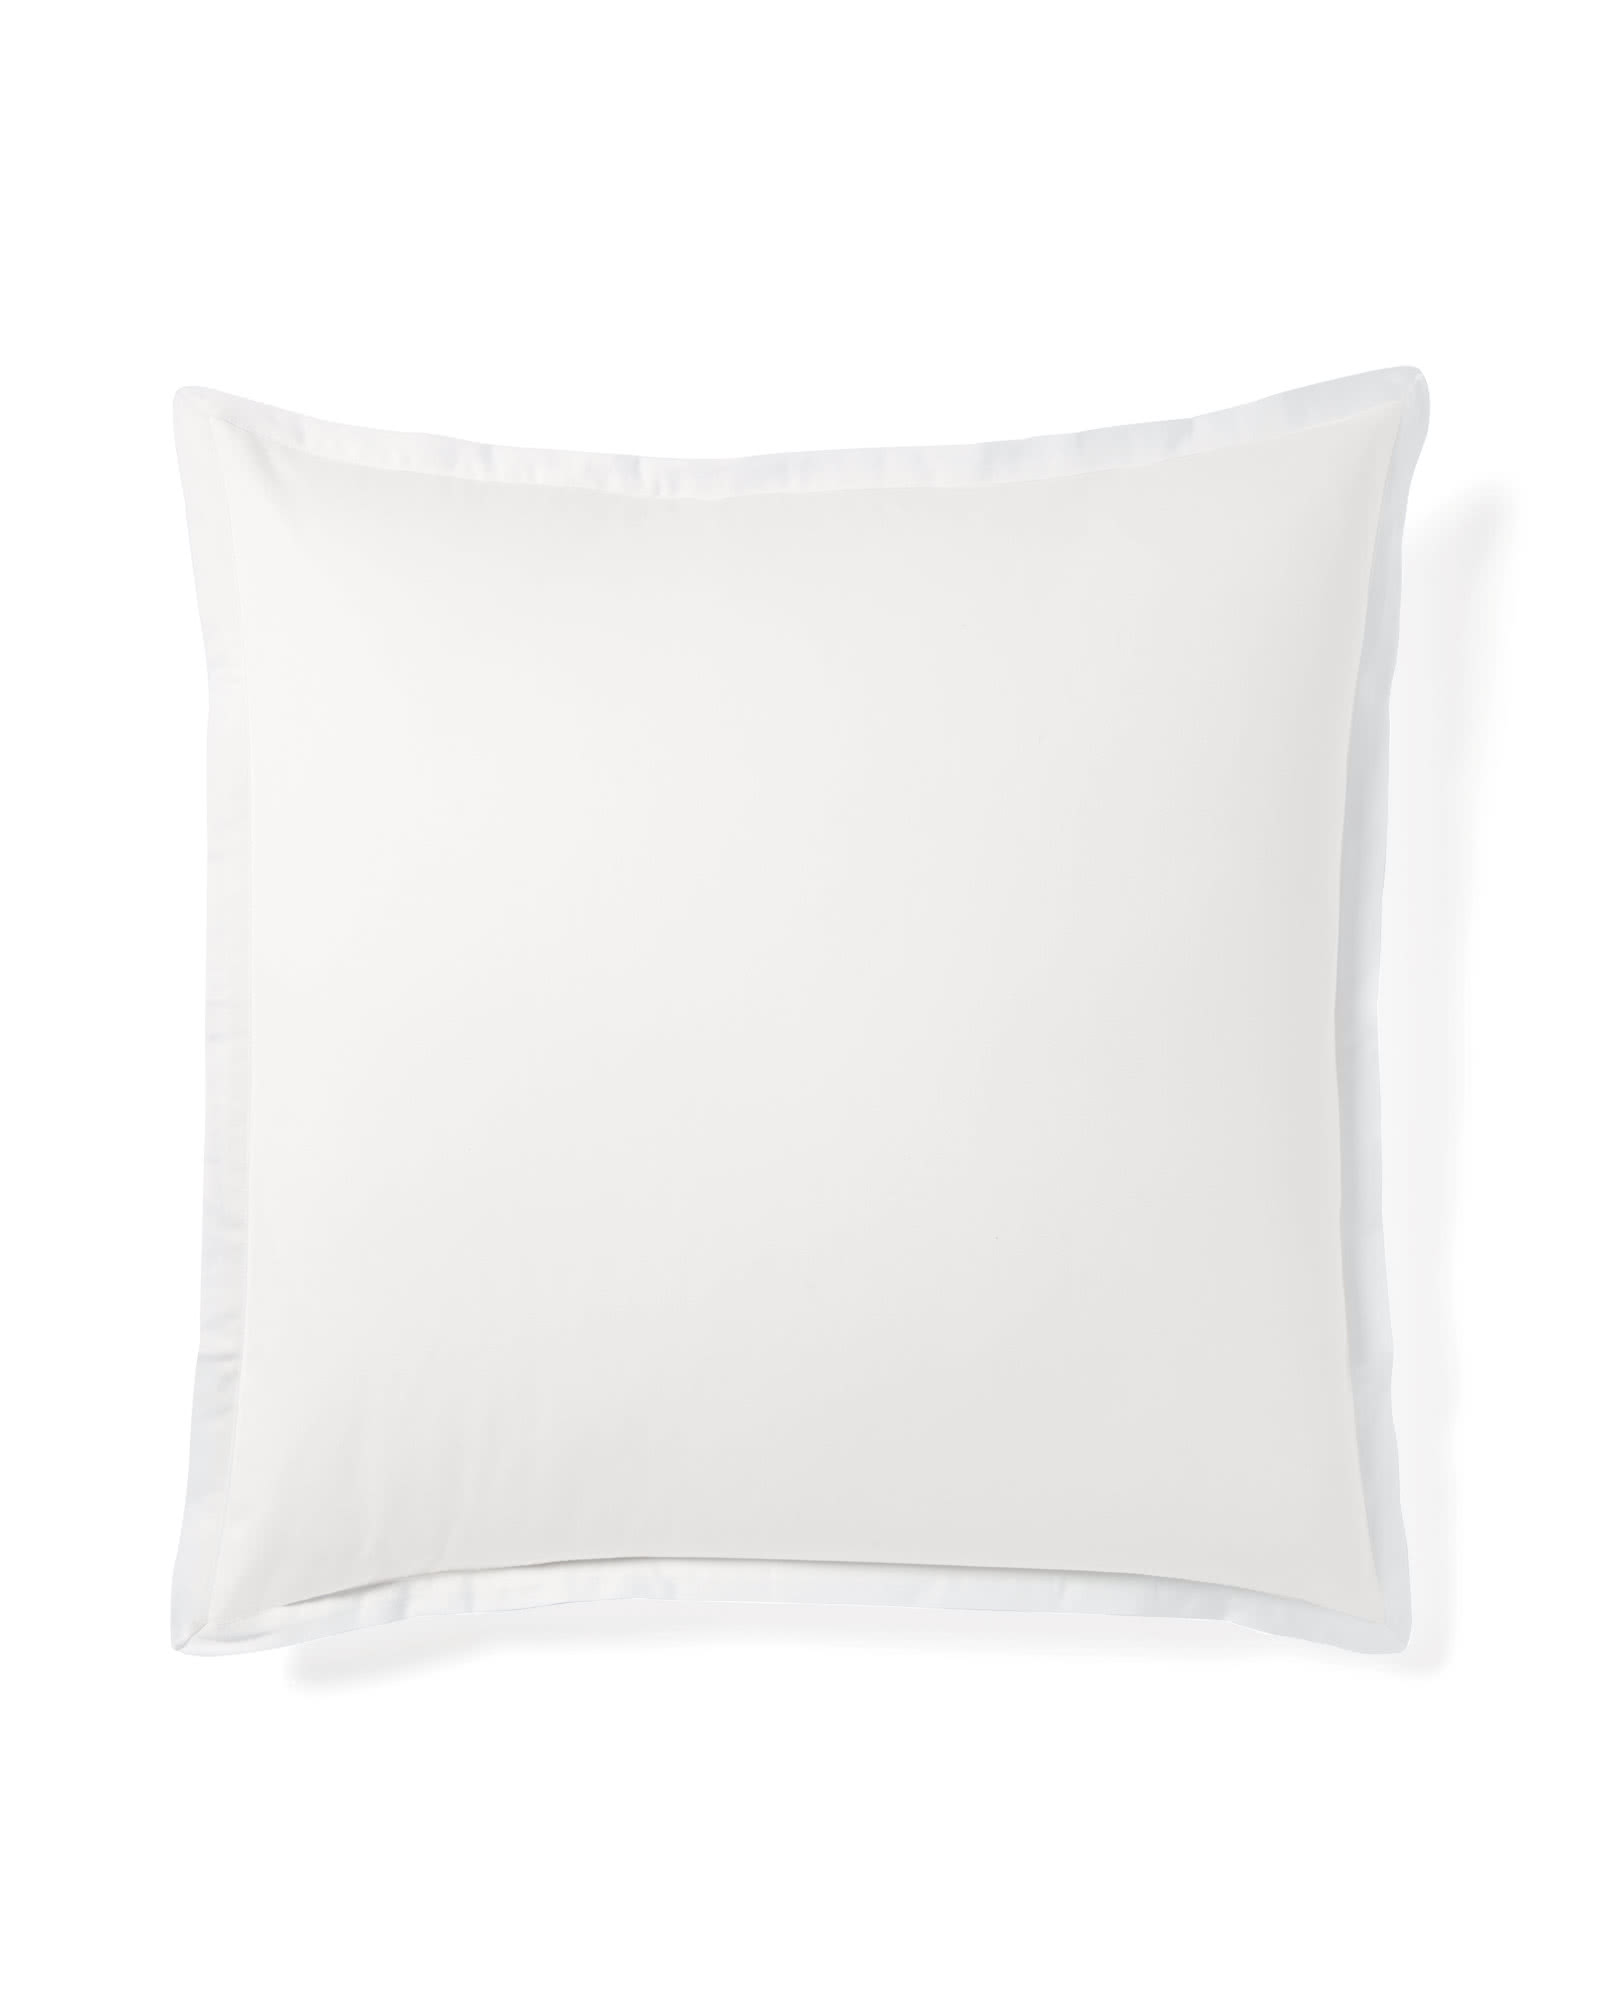 Border Frame Shams, White